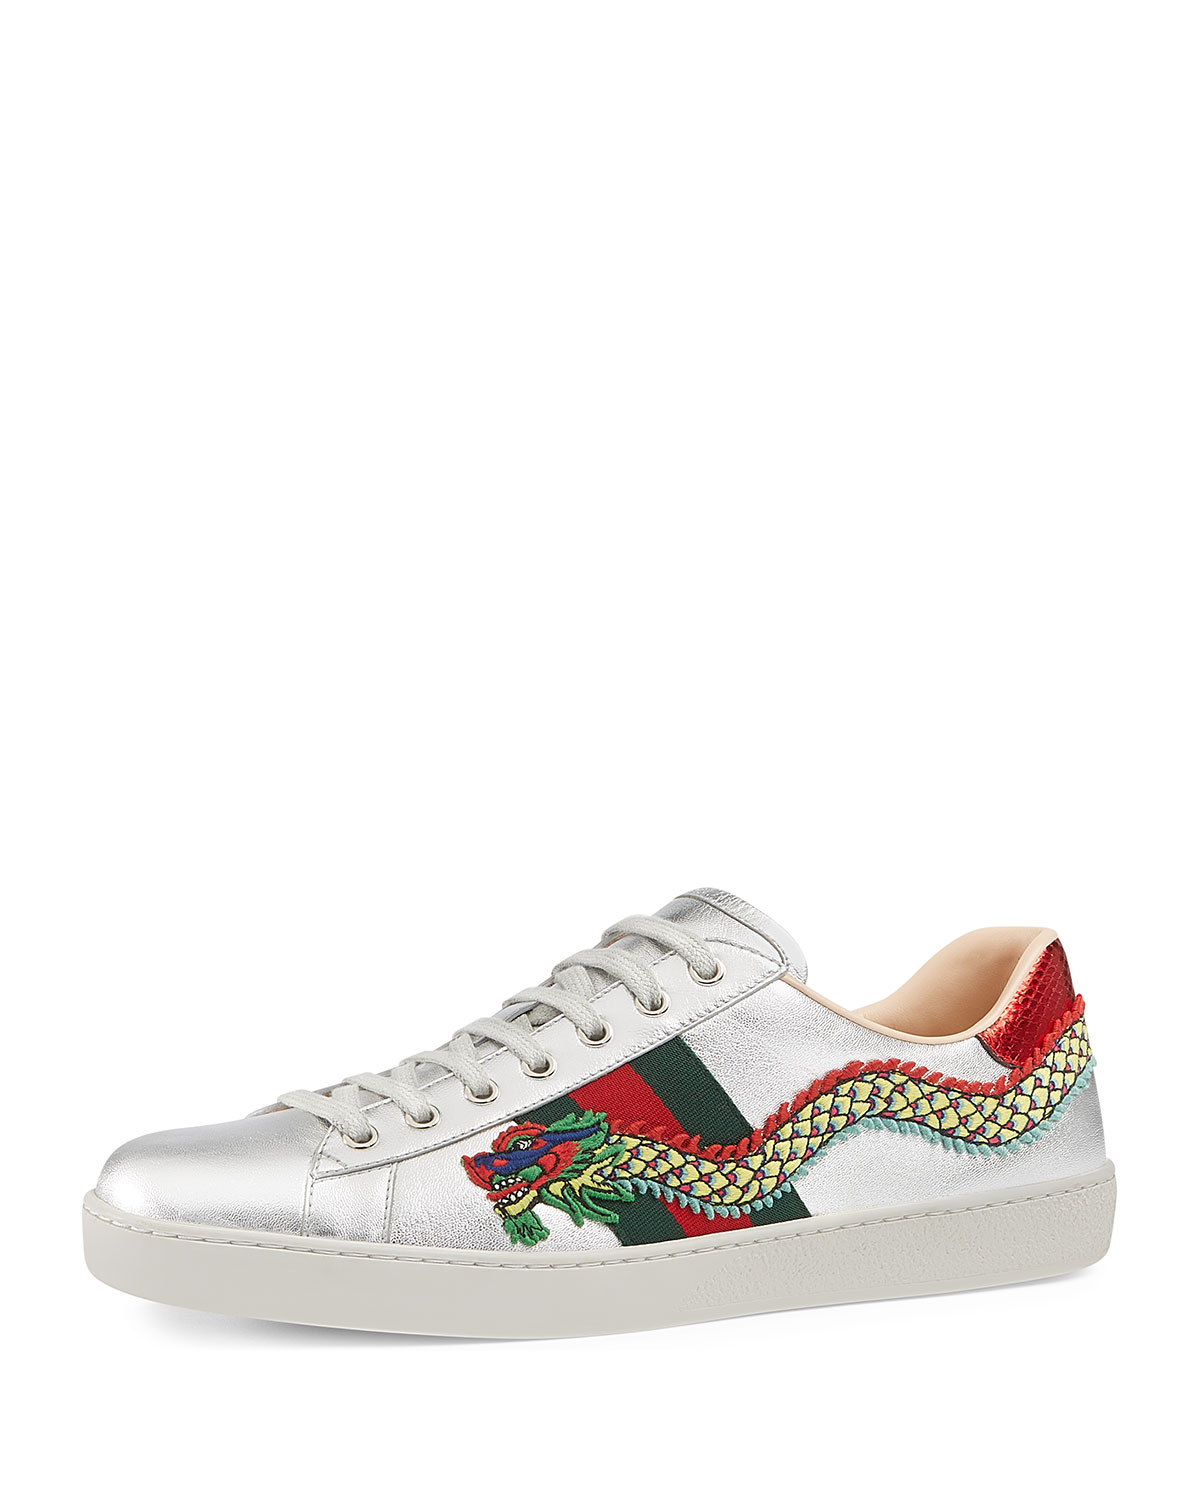 a87e0e0895b Gucci Men s New Ace Embroidered Leather Low-Top Sneakers